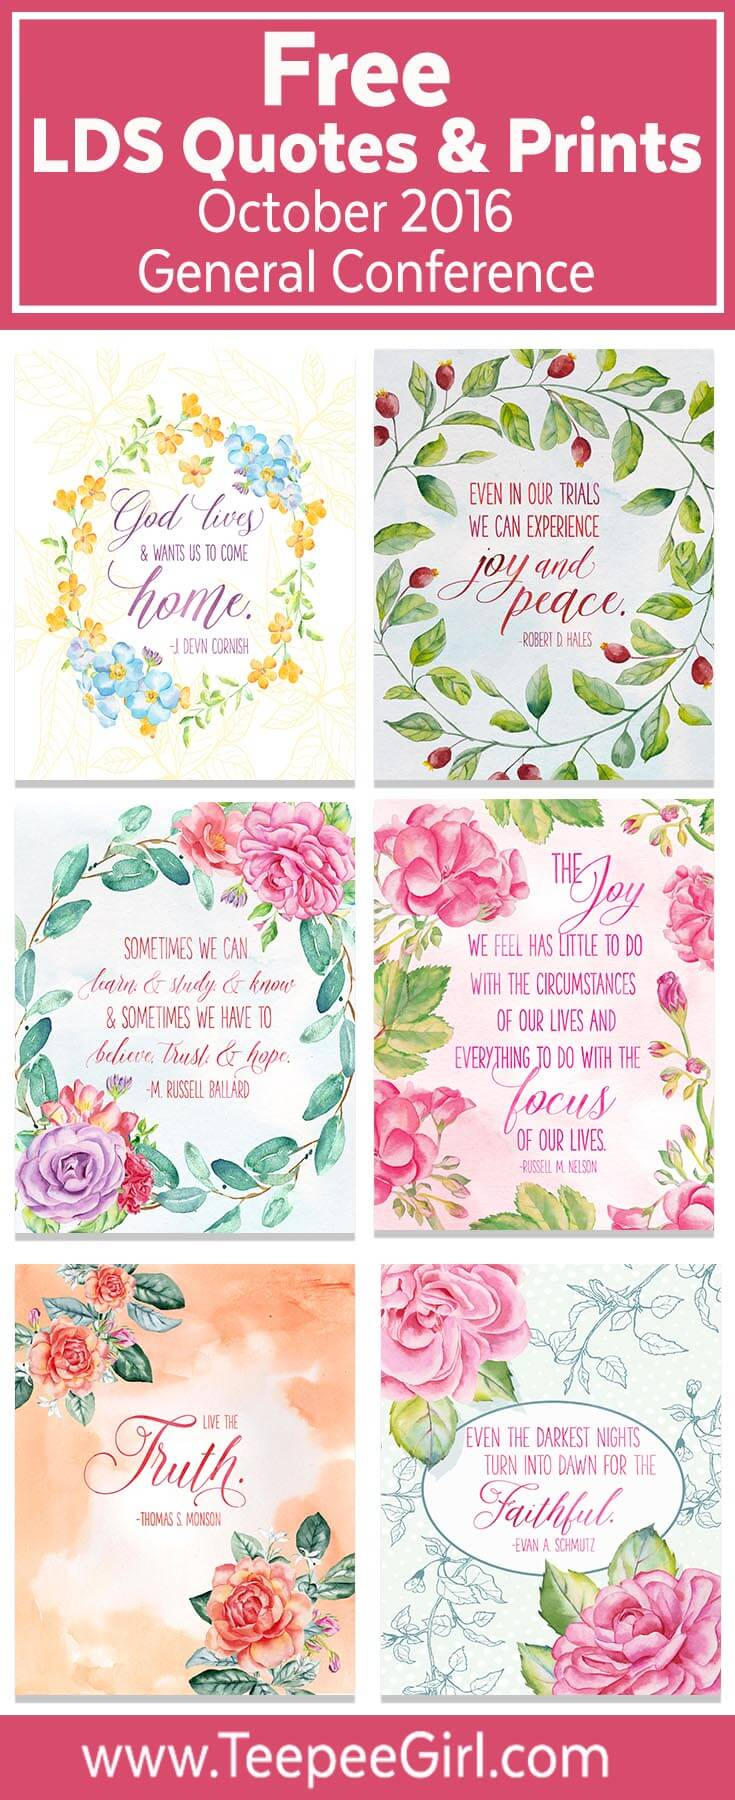 These 2016 October LDS General Conference printable quotes come in two sizes and are perfect for visiting teaching, lesson handouts, and framing in your home. Download them for free today at www.TeepeeGirl.com!